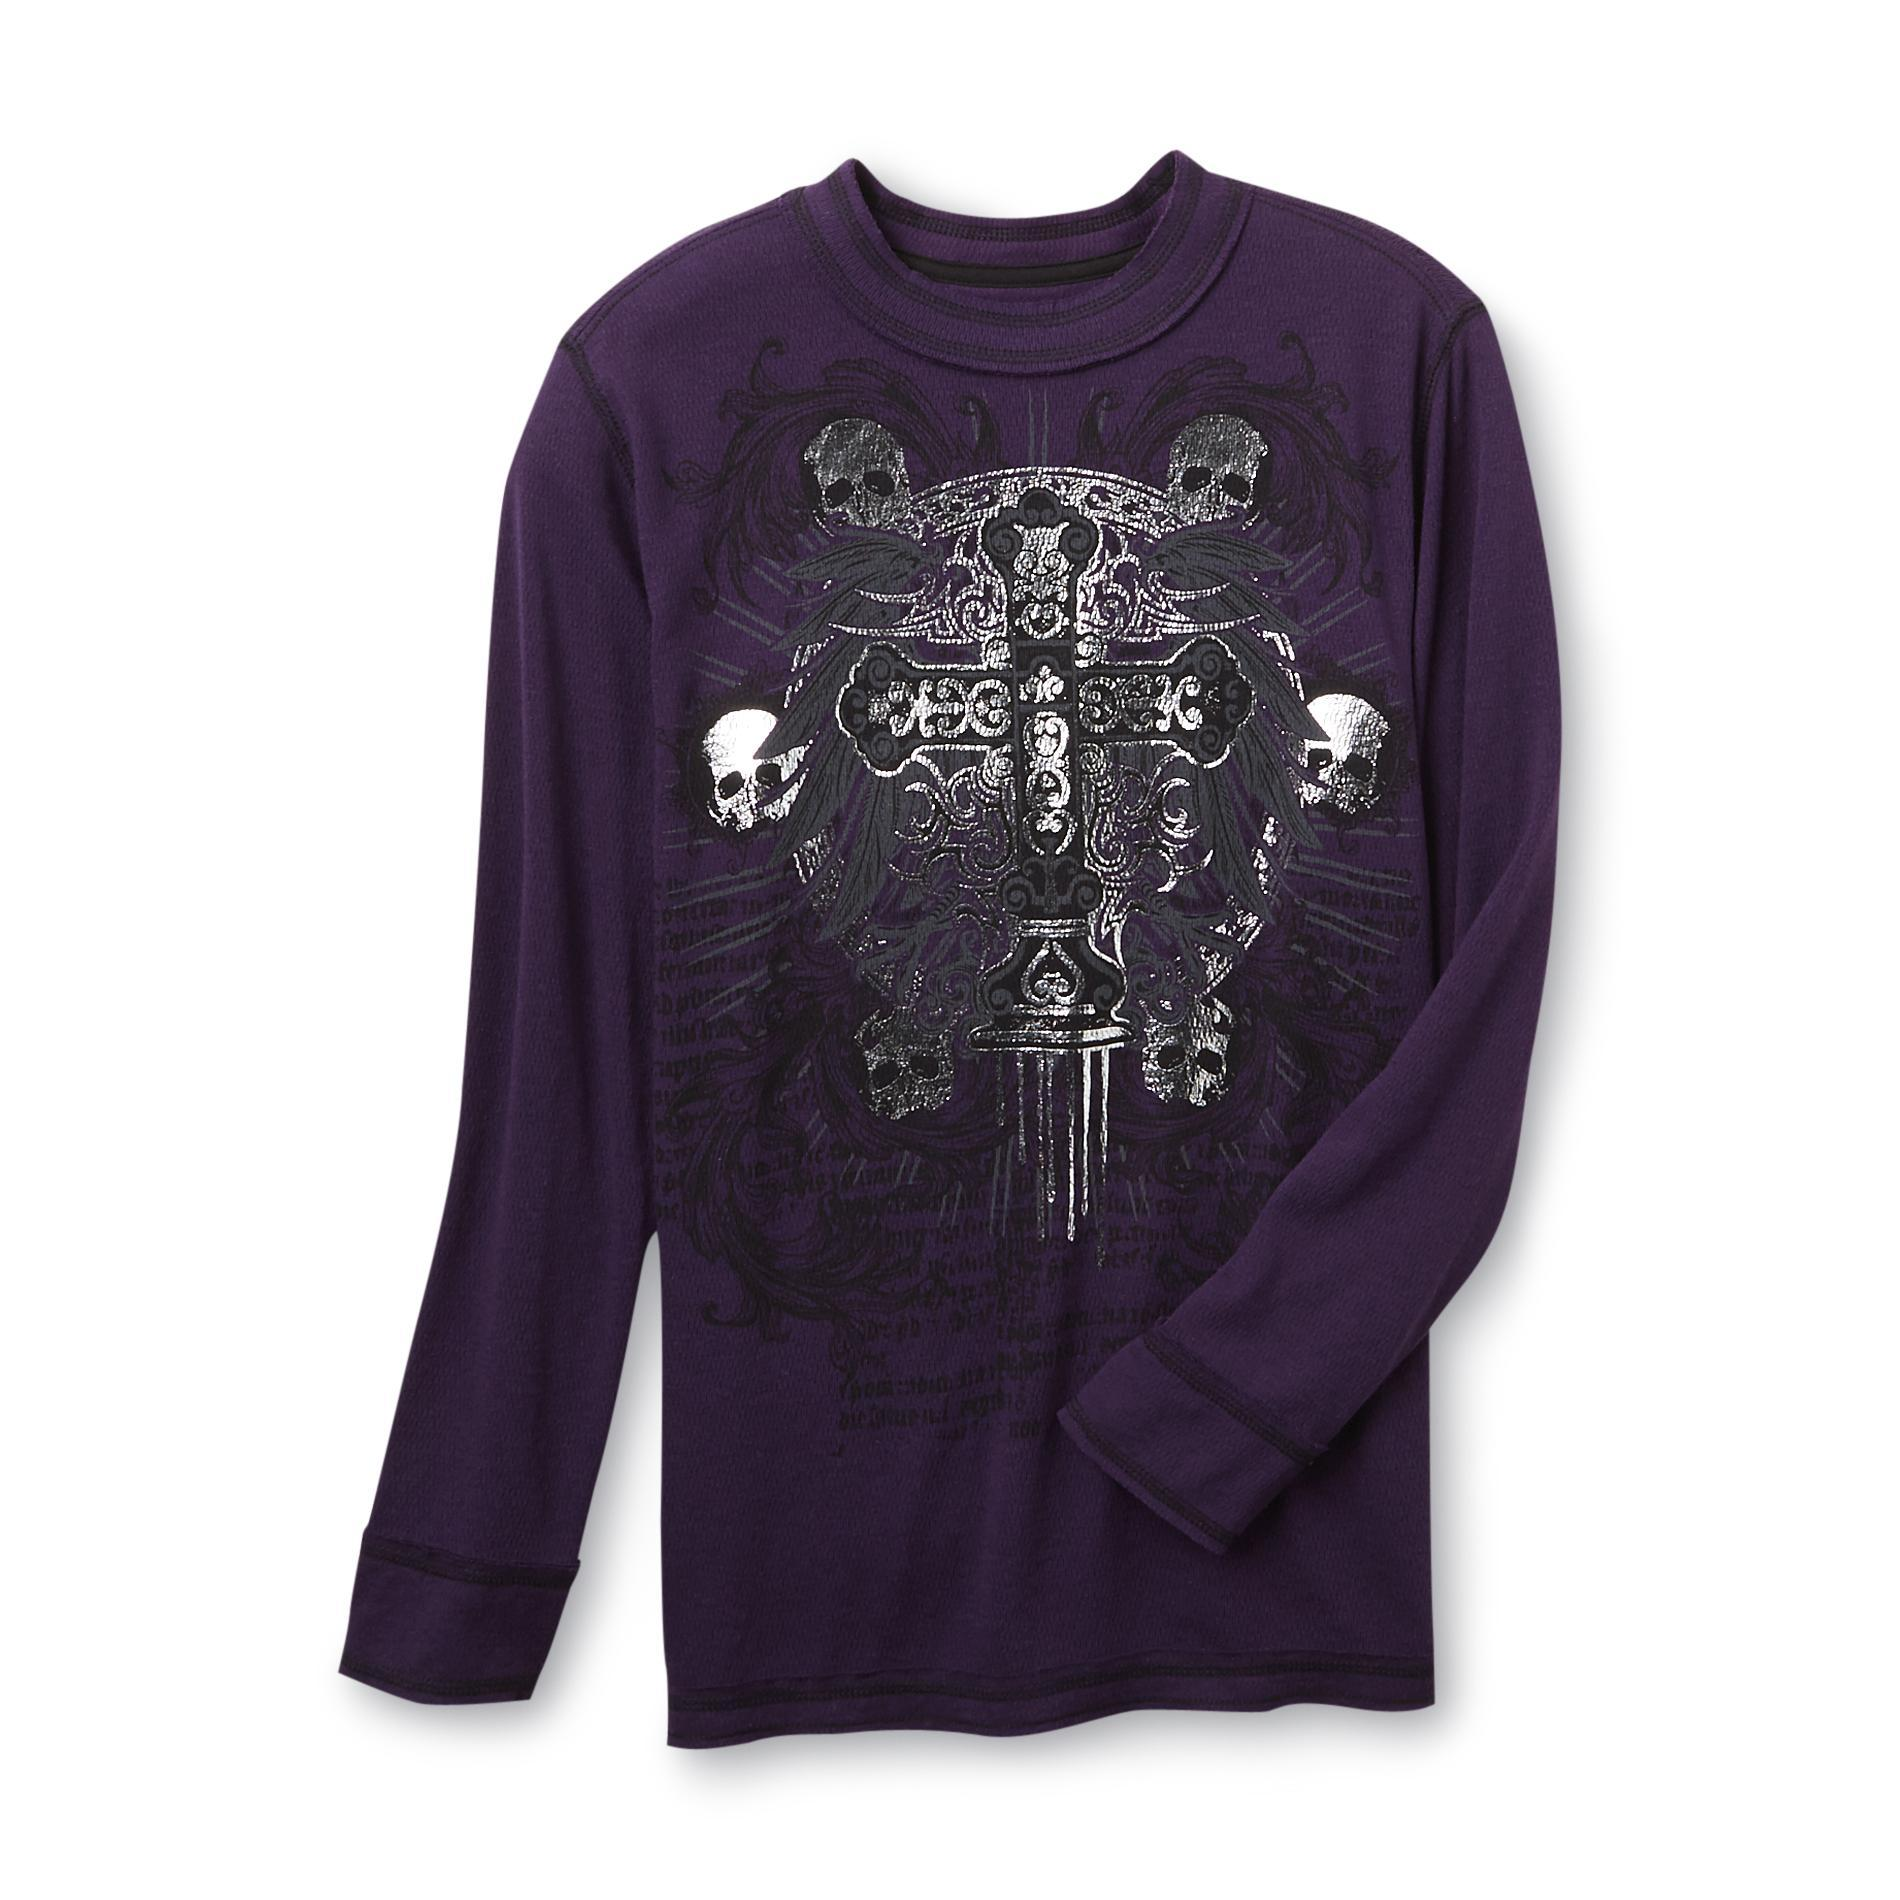 SK2 Boy's Thermal Graphic T-Shirt - Gothic Skull